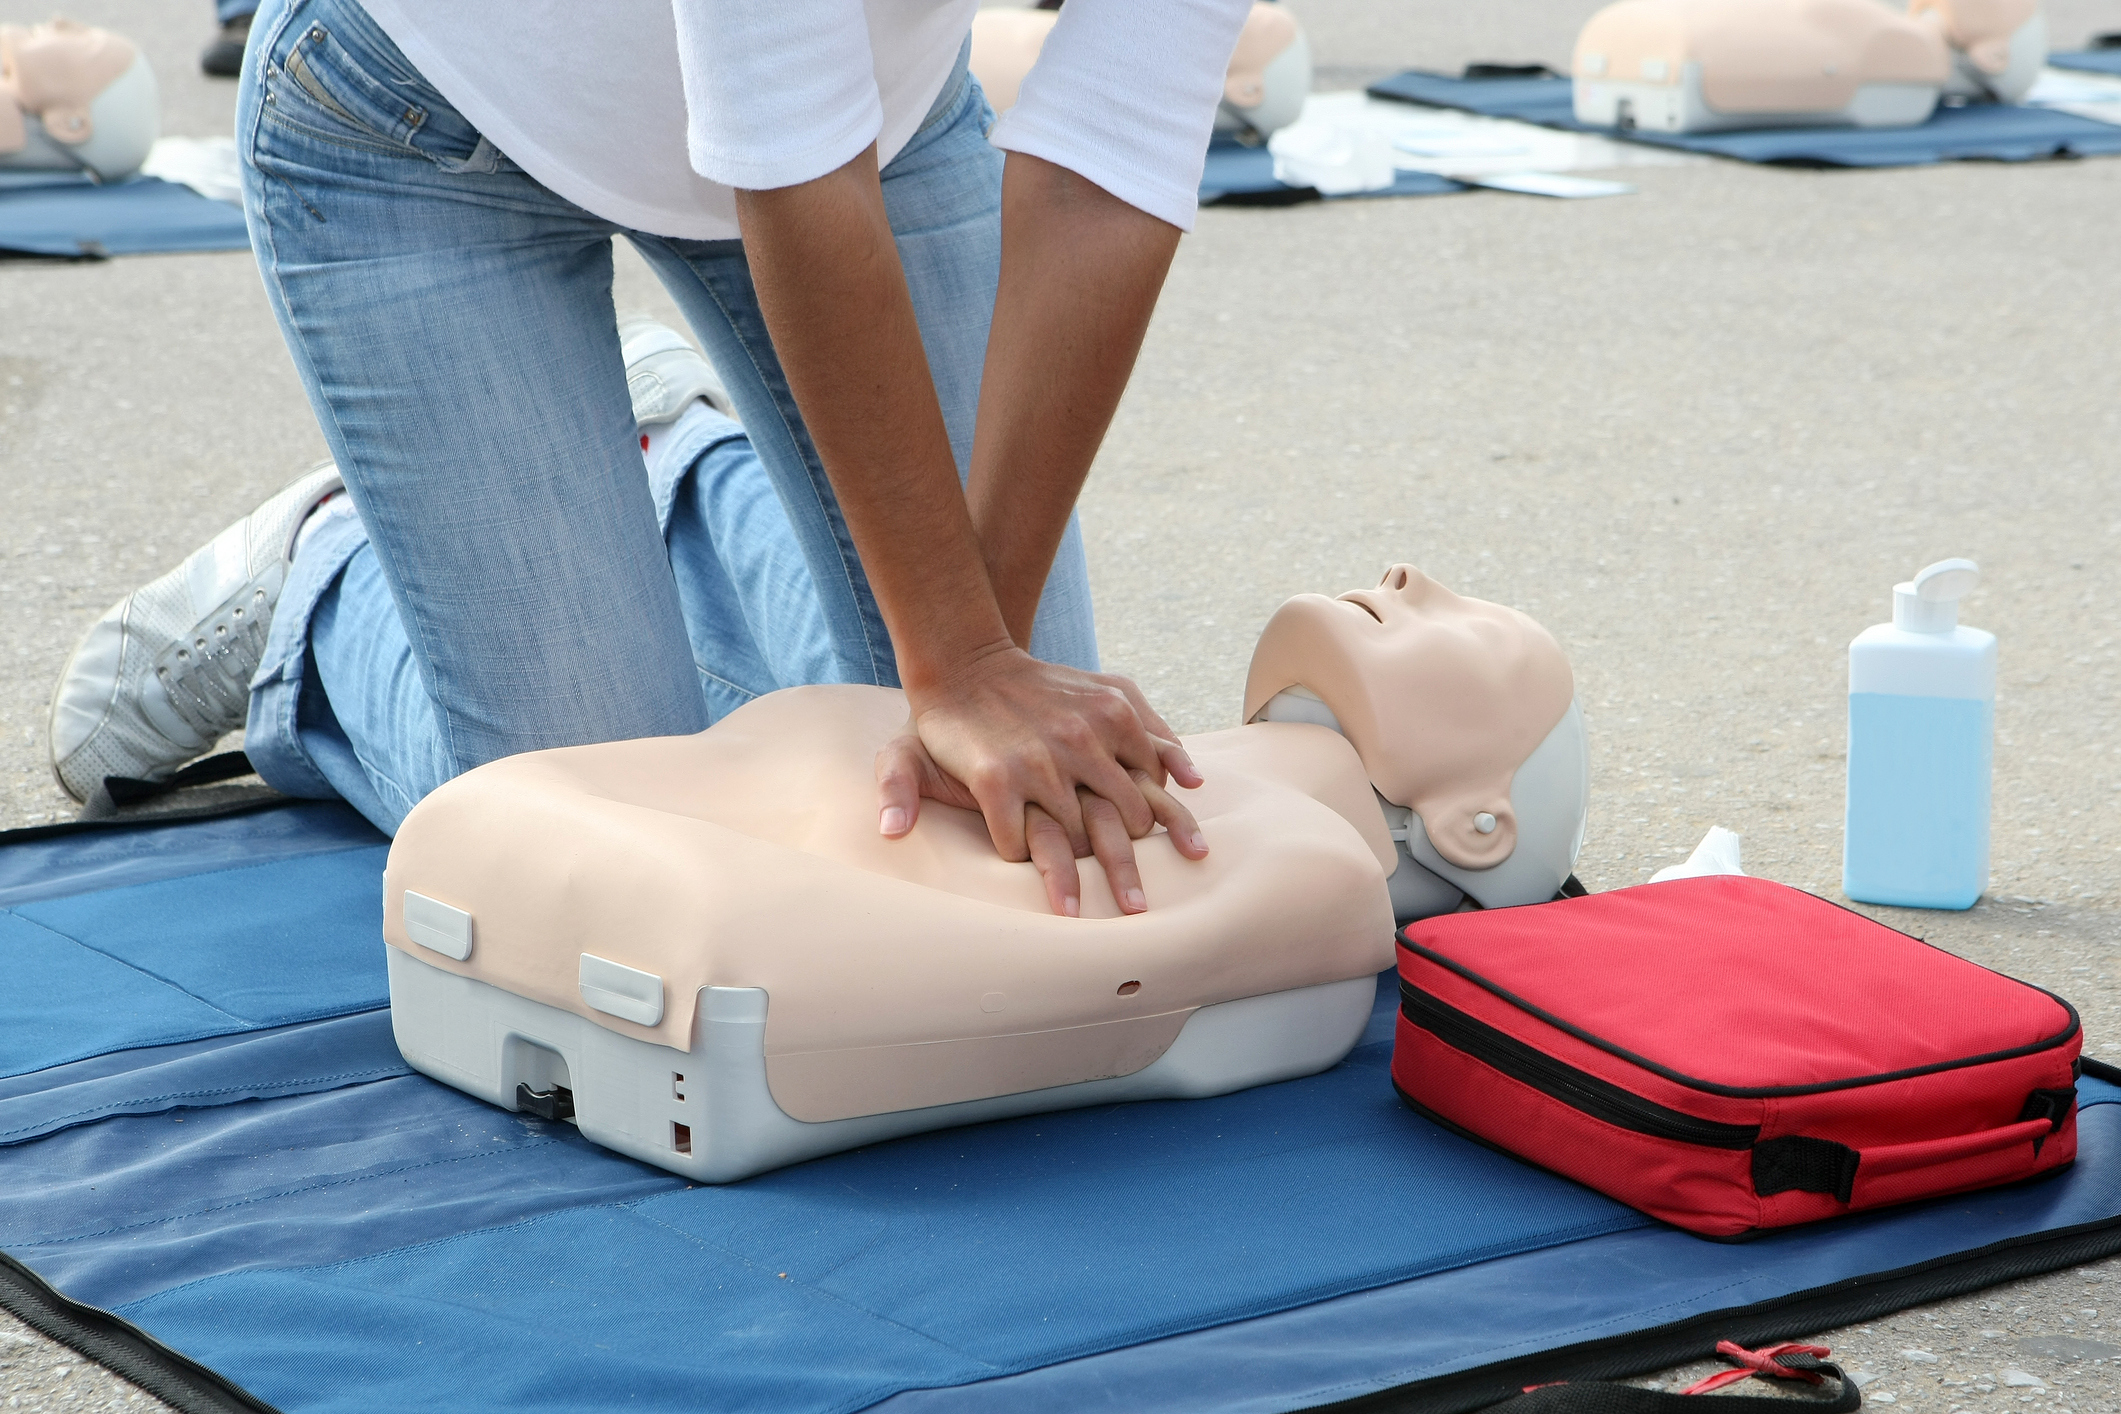 498609577-female-instructor-showing-cpr-on-training-dolljpg